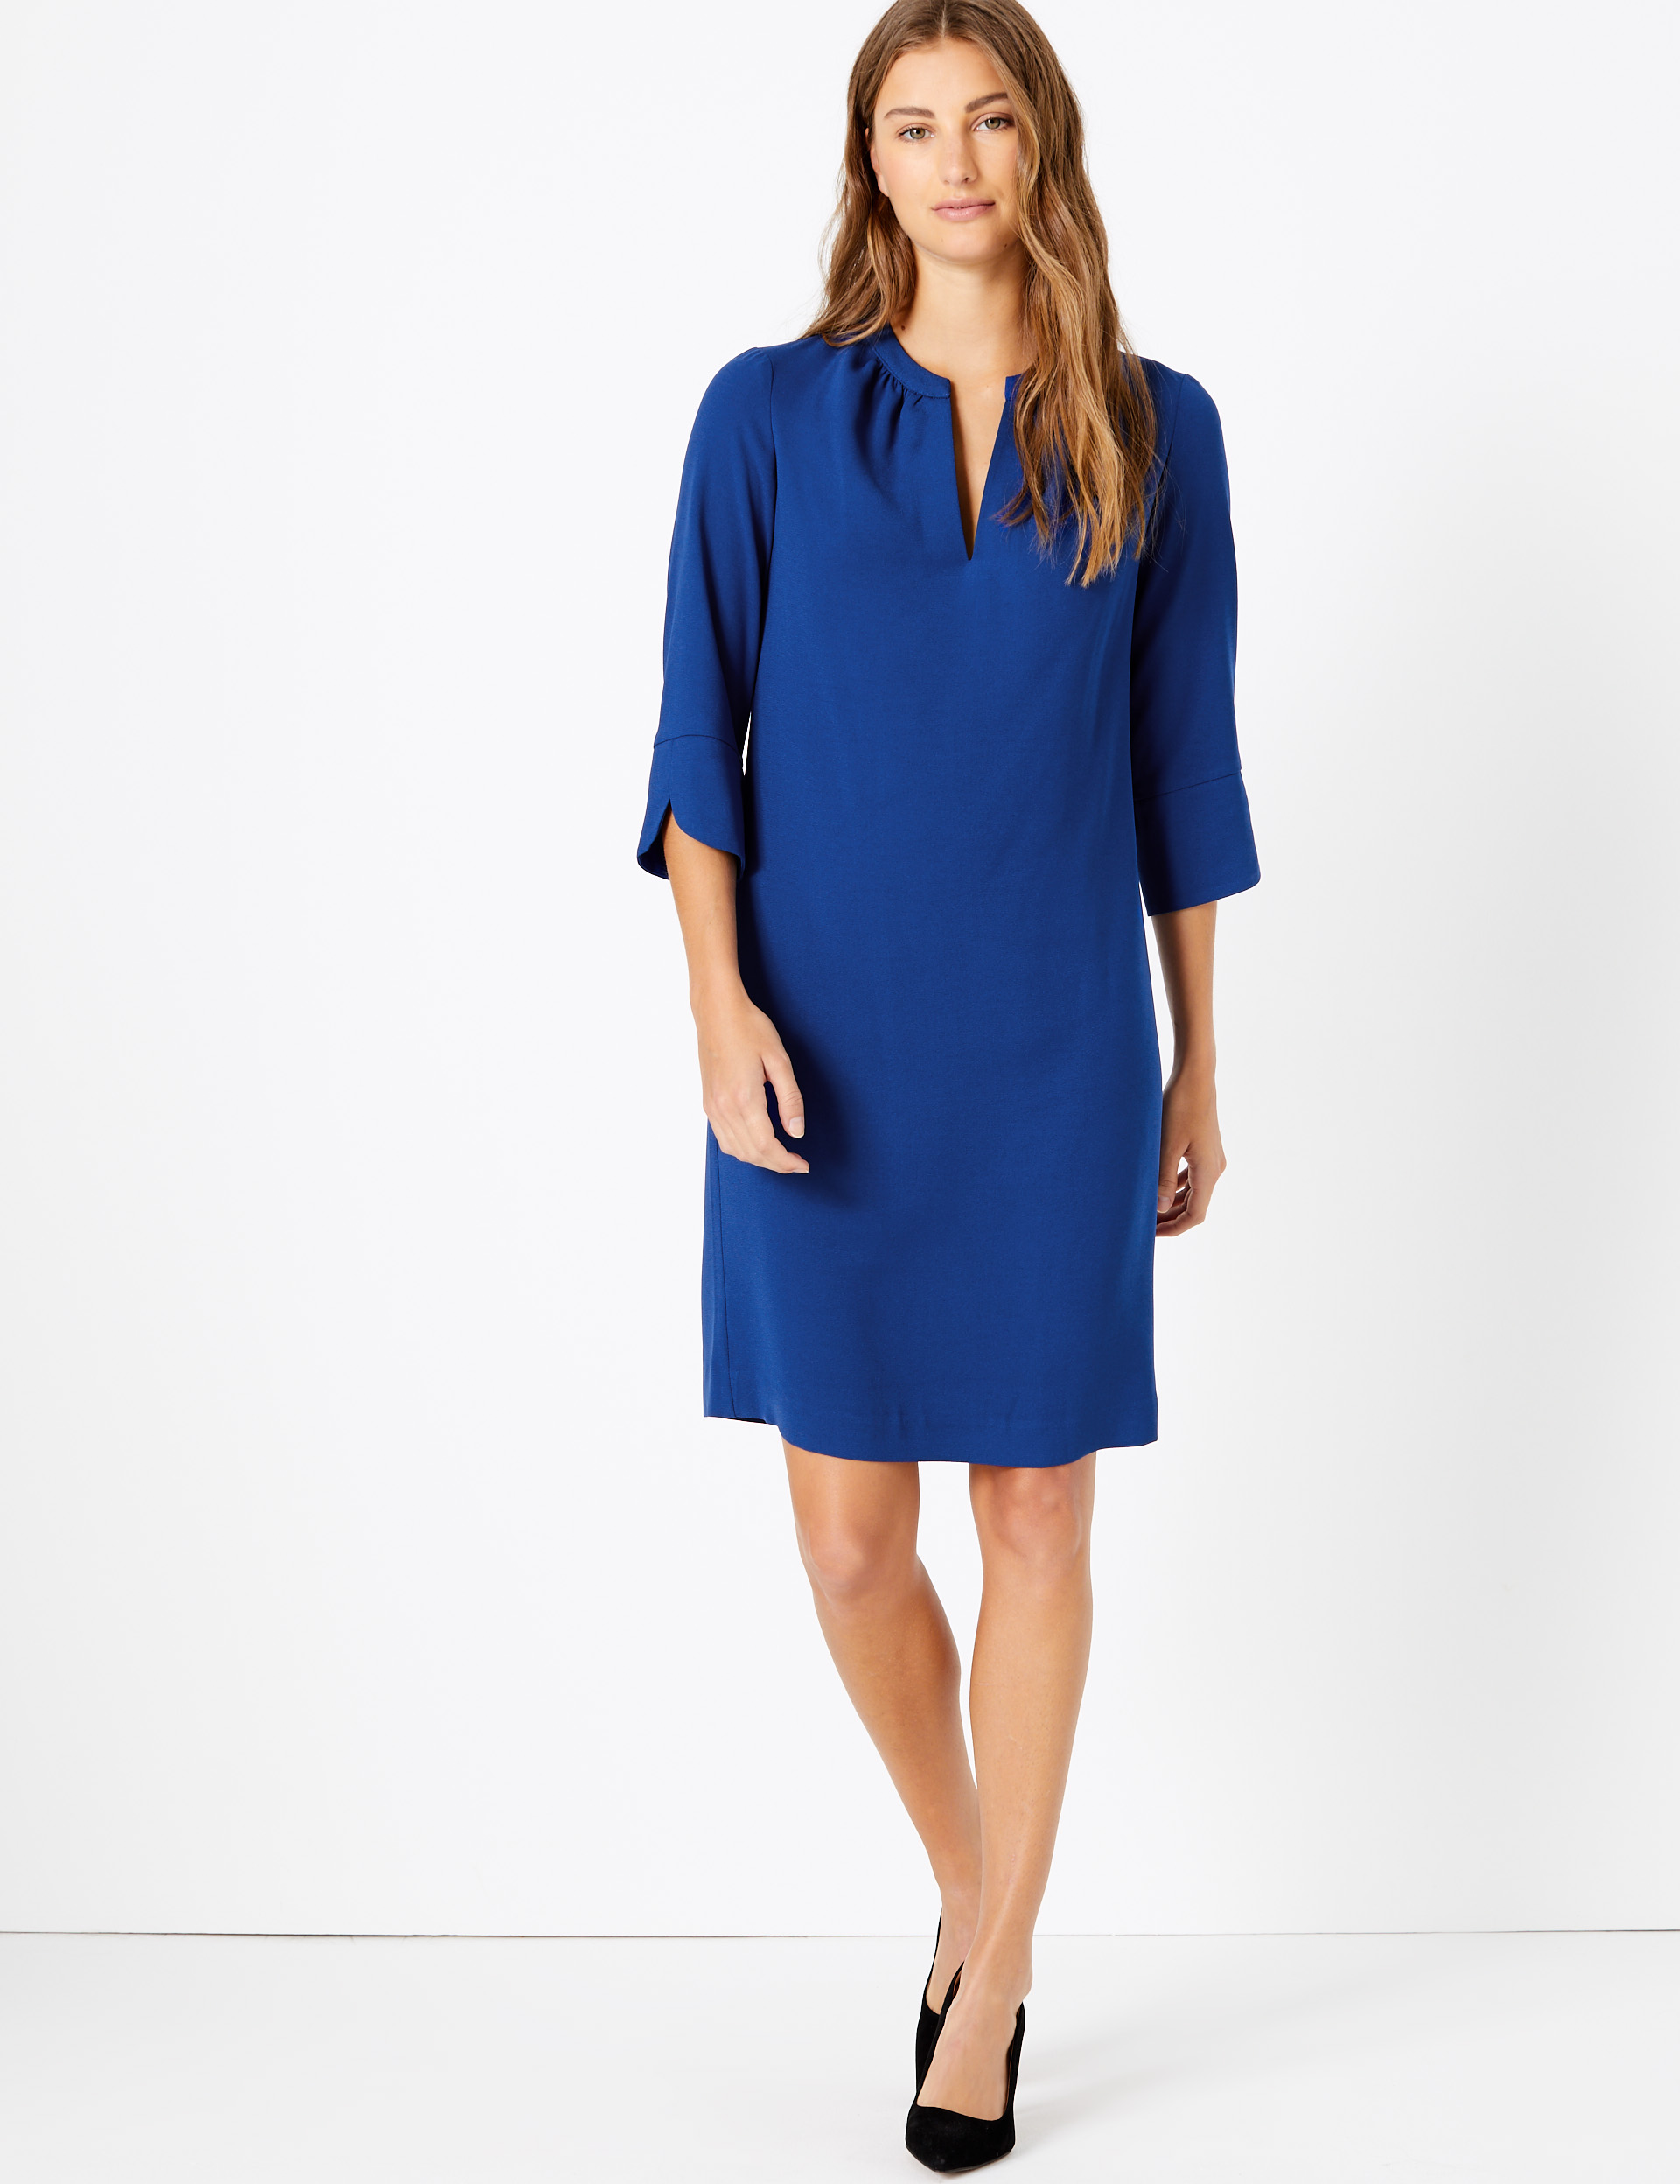 The Smart Set crepe dress